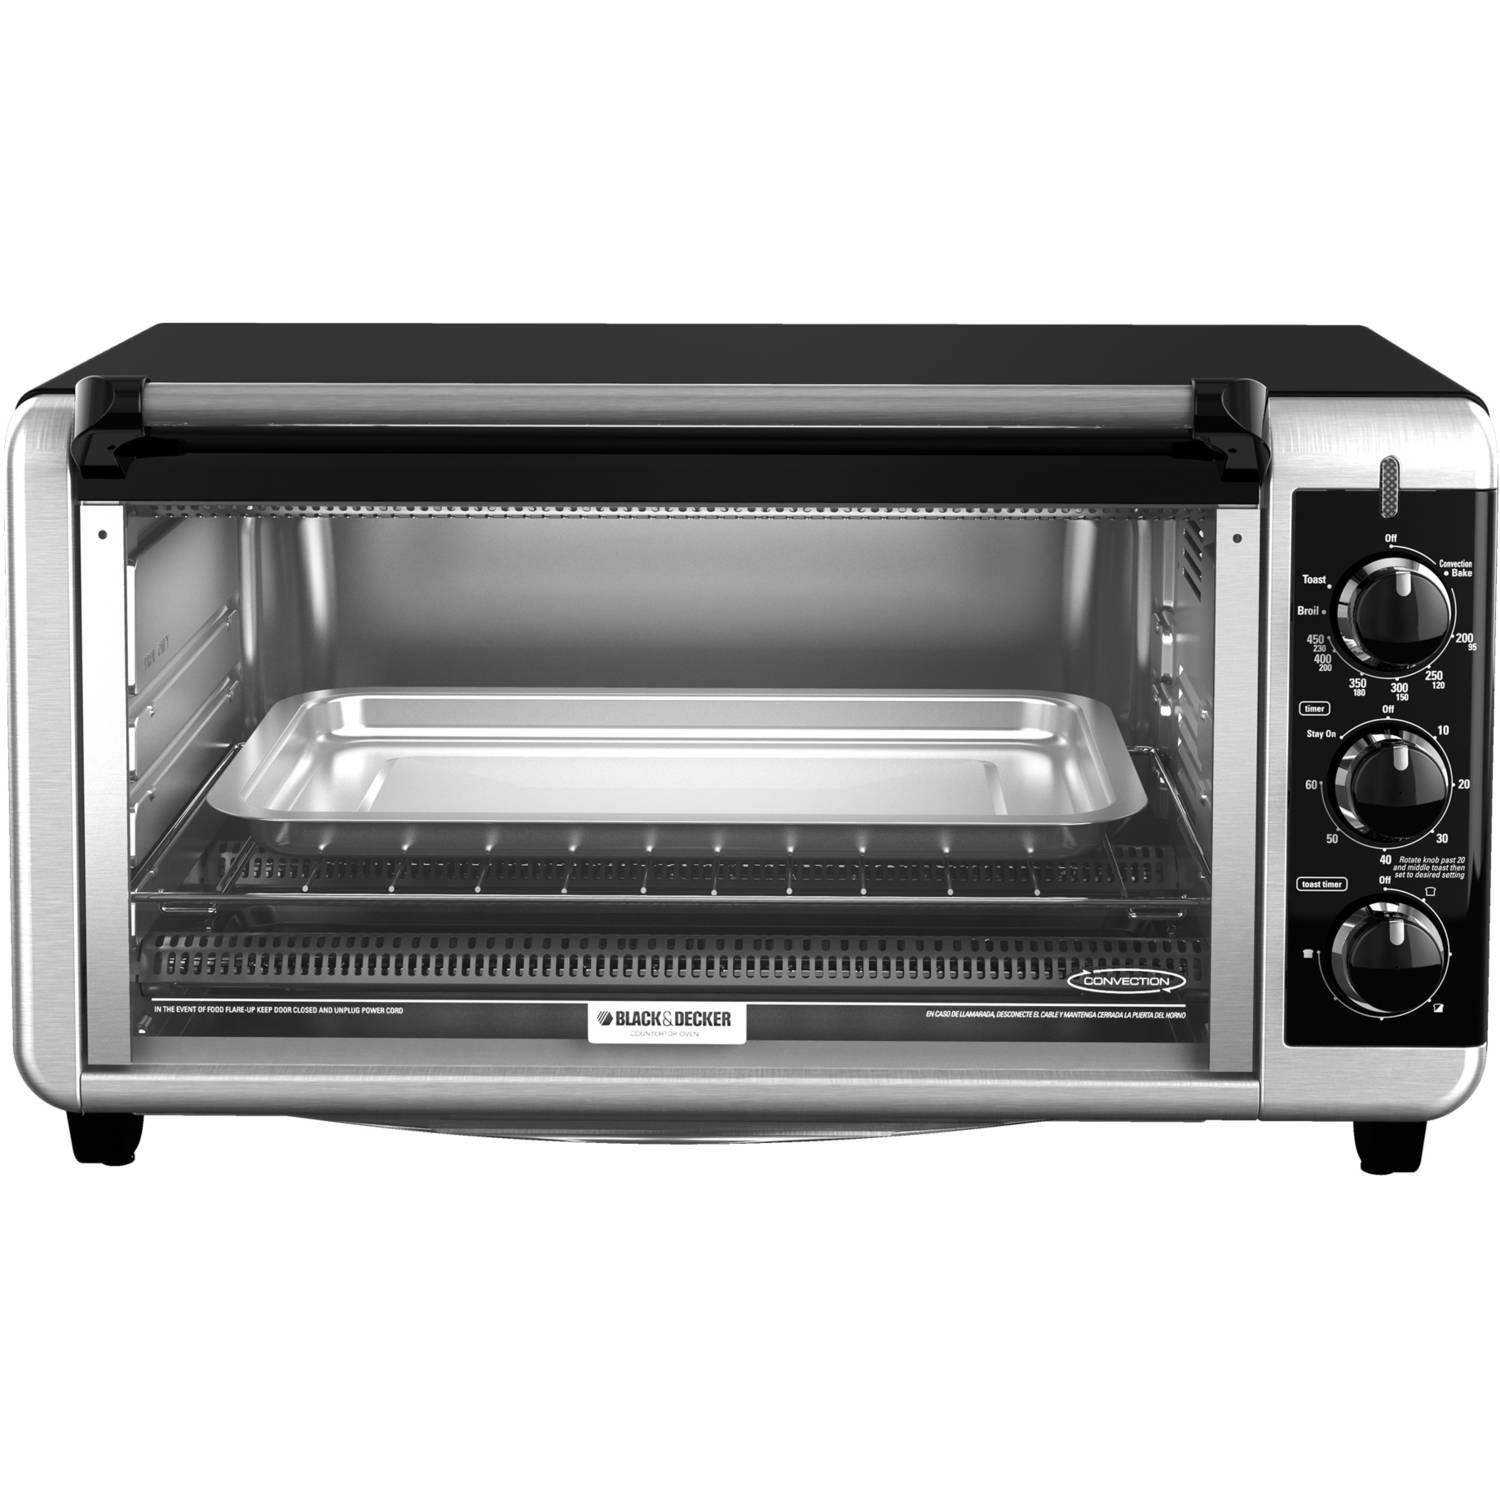 Black & Decker Extra Wide 8-Slice Toaster Oven, Stainless Steel